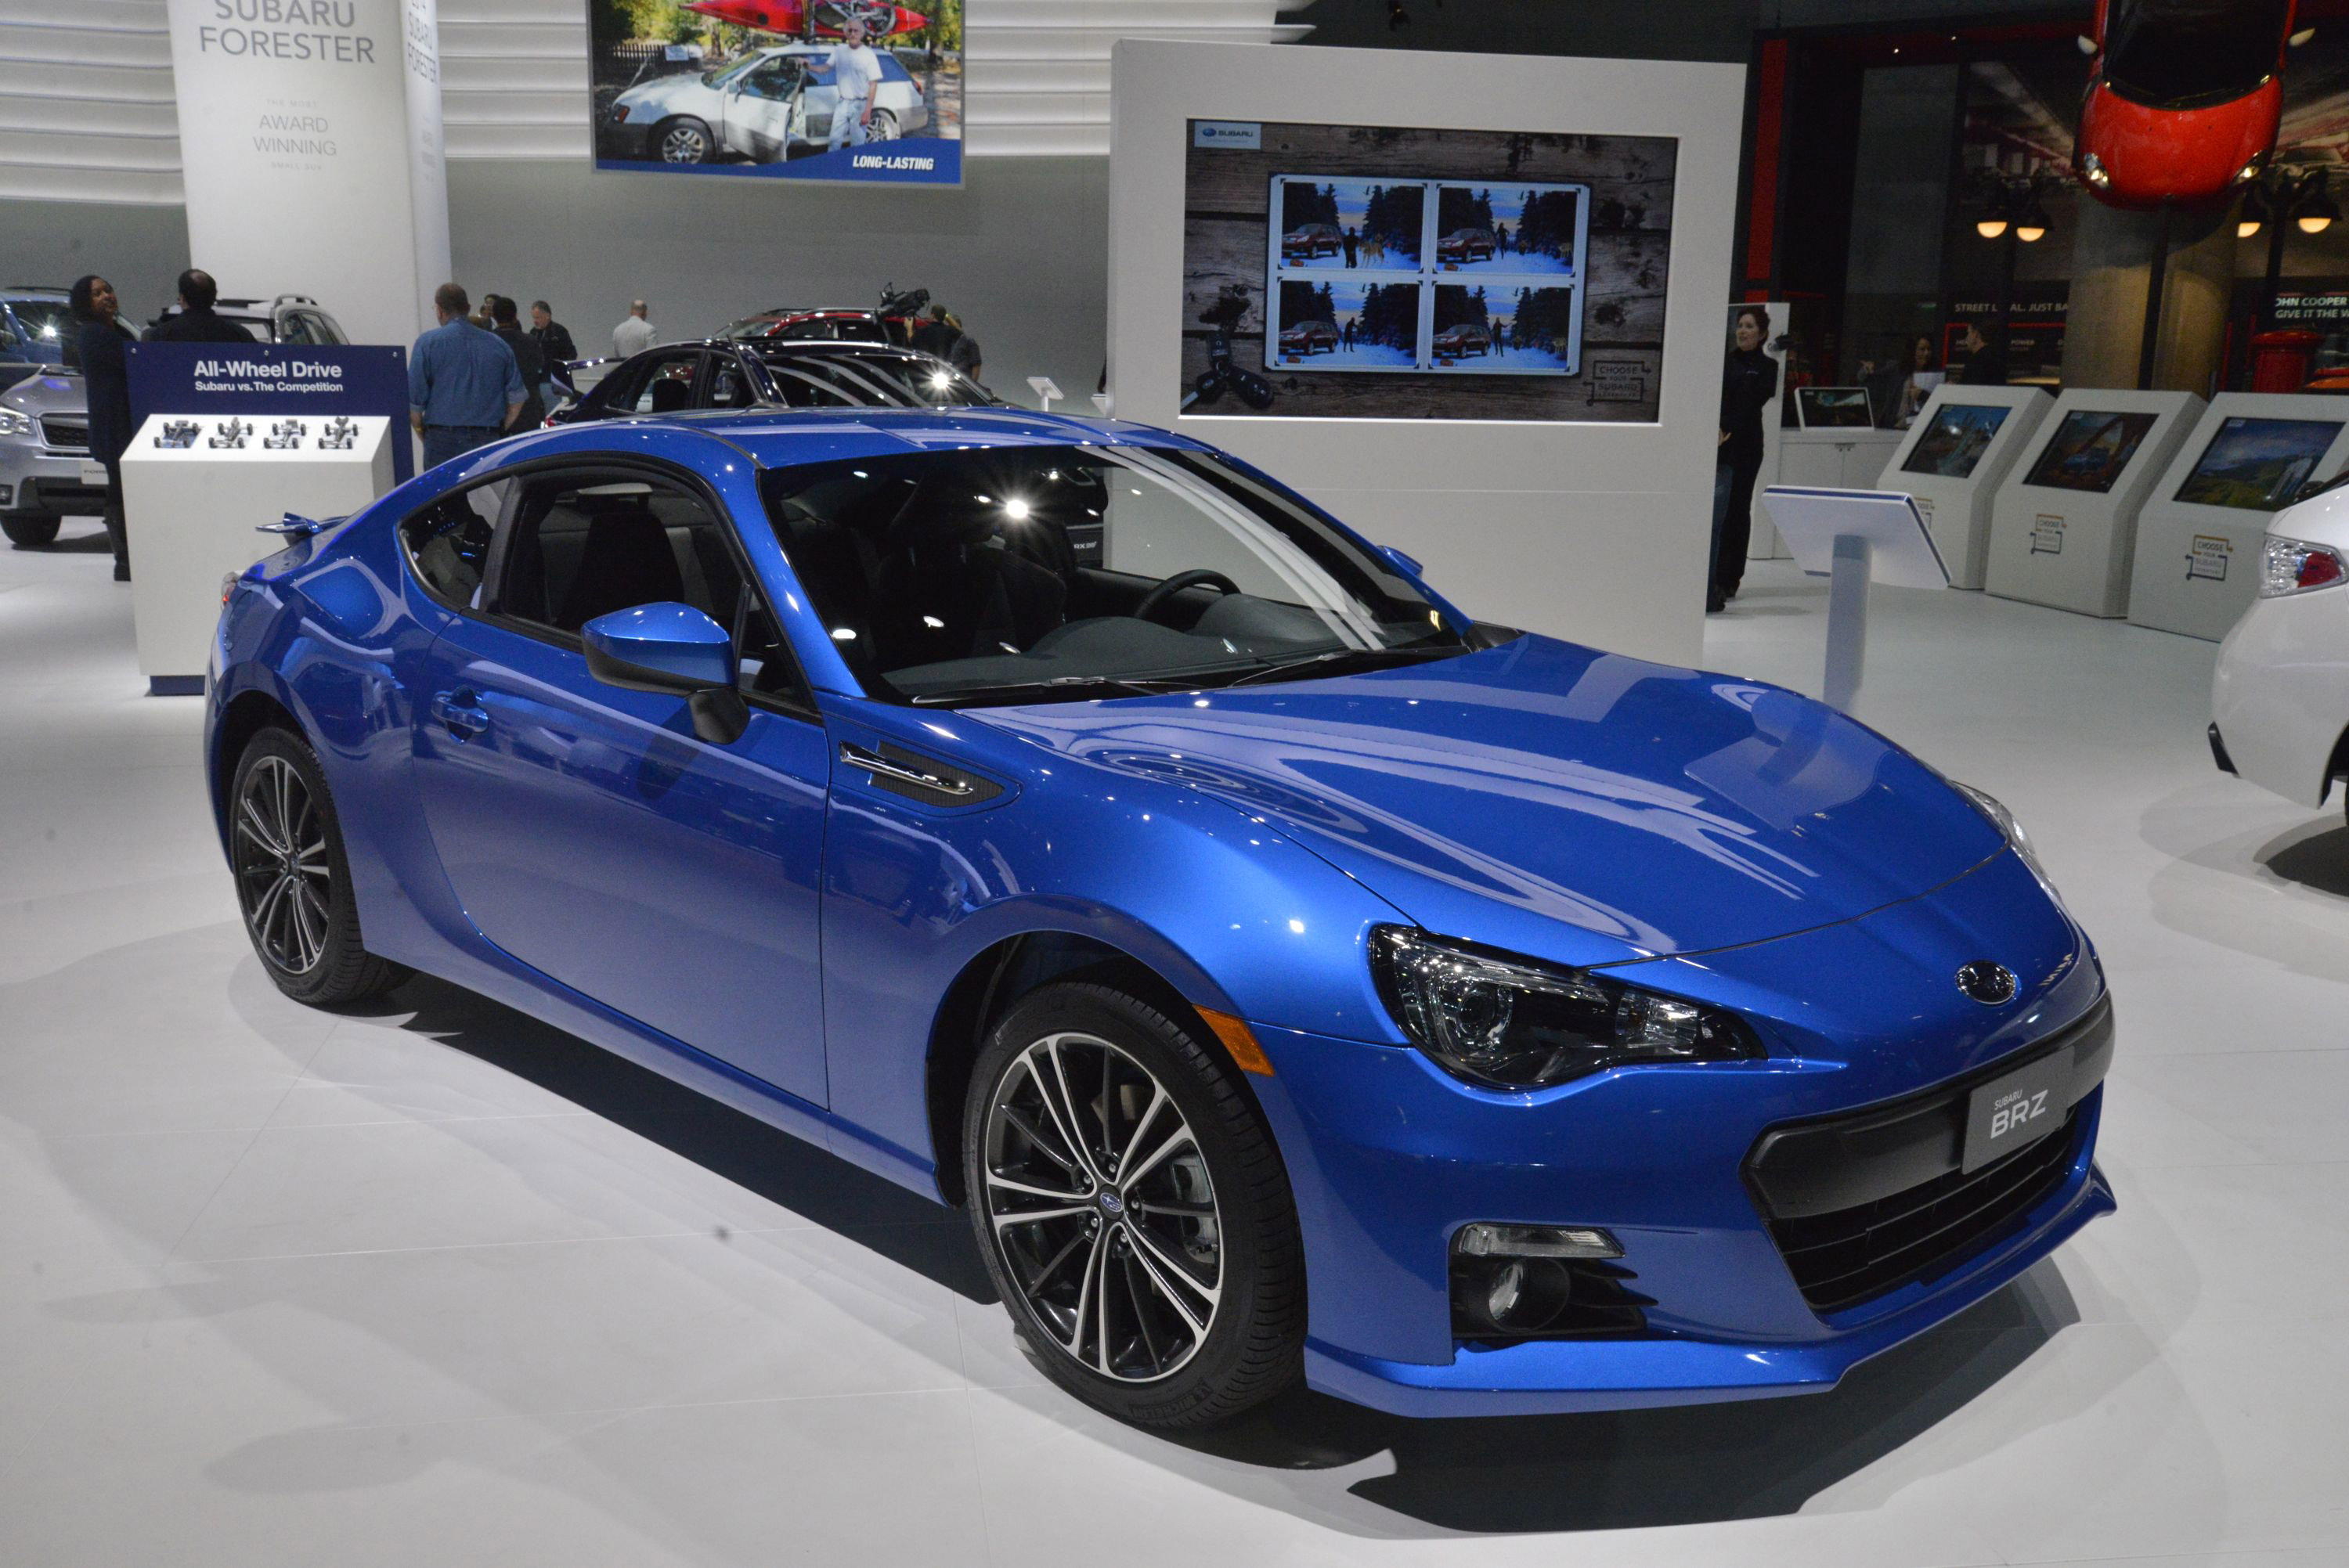 Subaru BRZ Los Angeles 2012 - Picture 78247